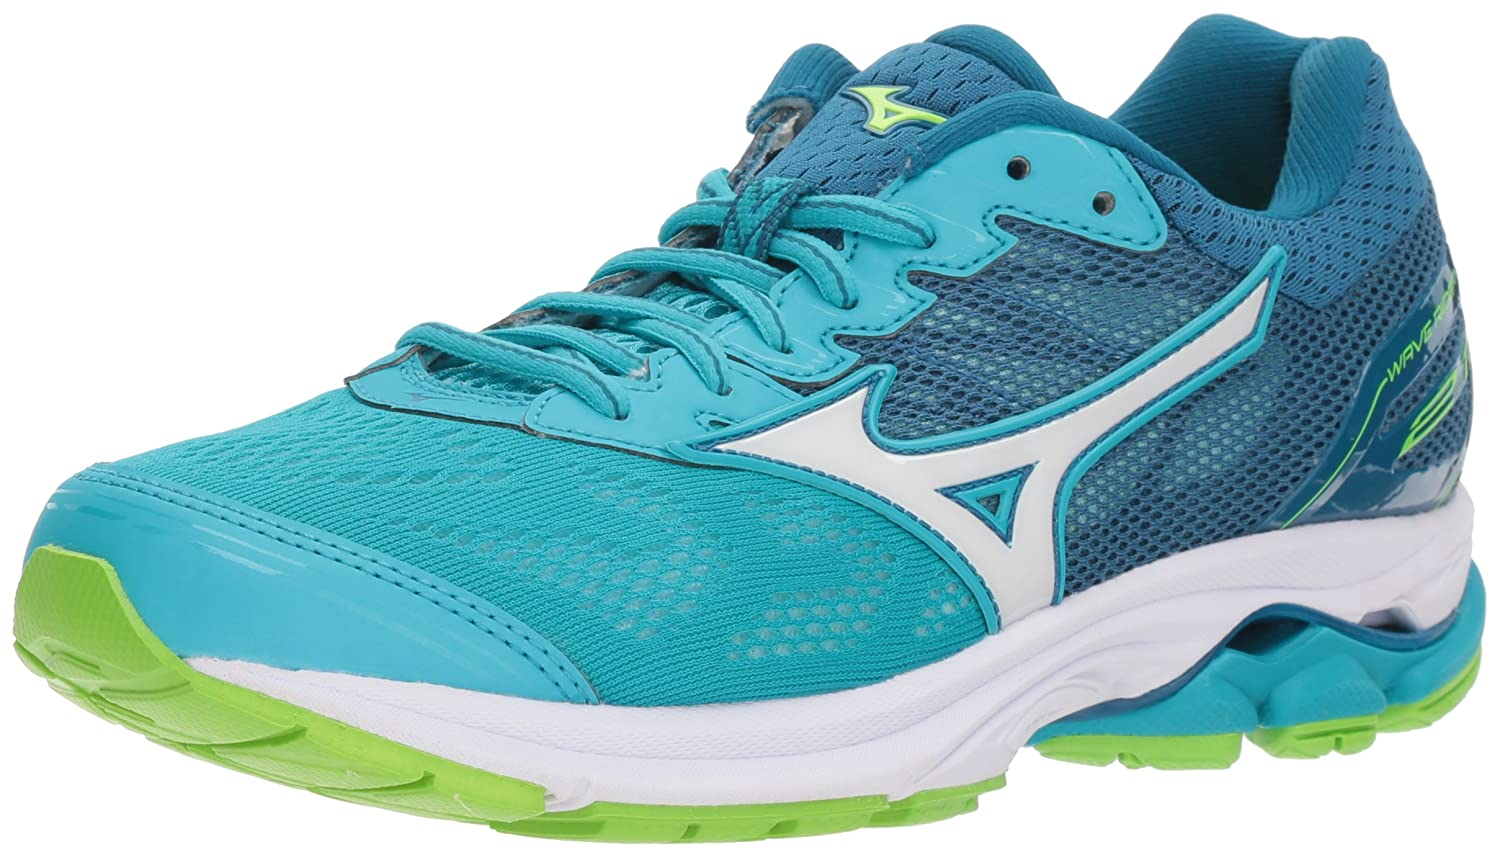 Mizuno Women's Wave Rider 21 Running Shoe B06WWJZN7G 11.5 B(M) US|Peacock Blue/White